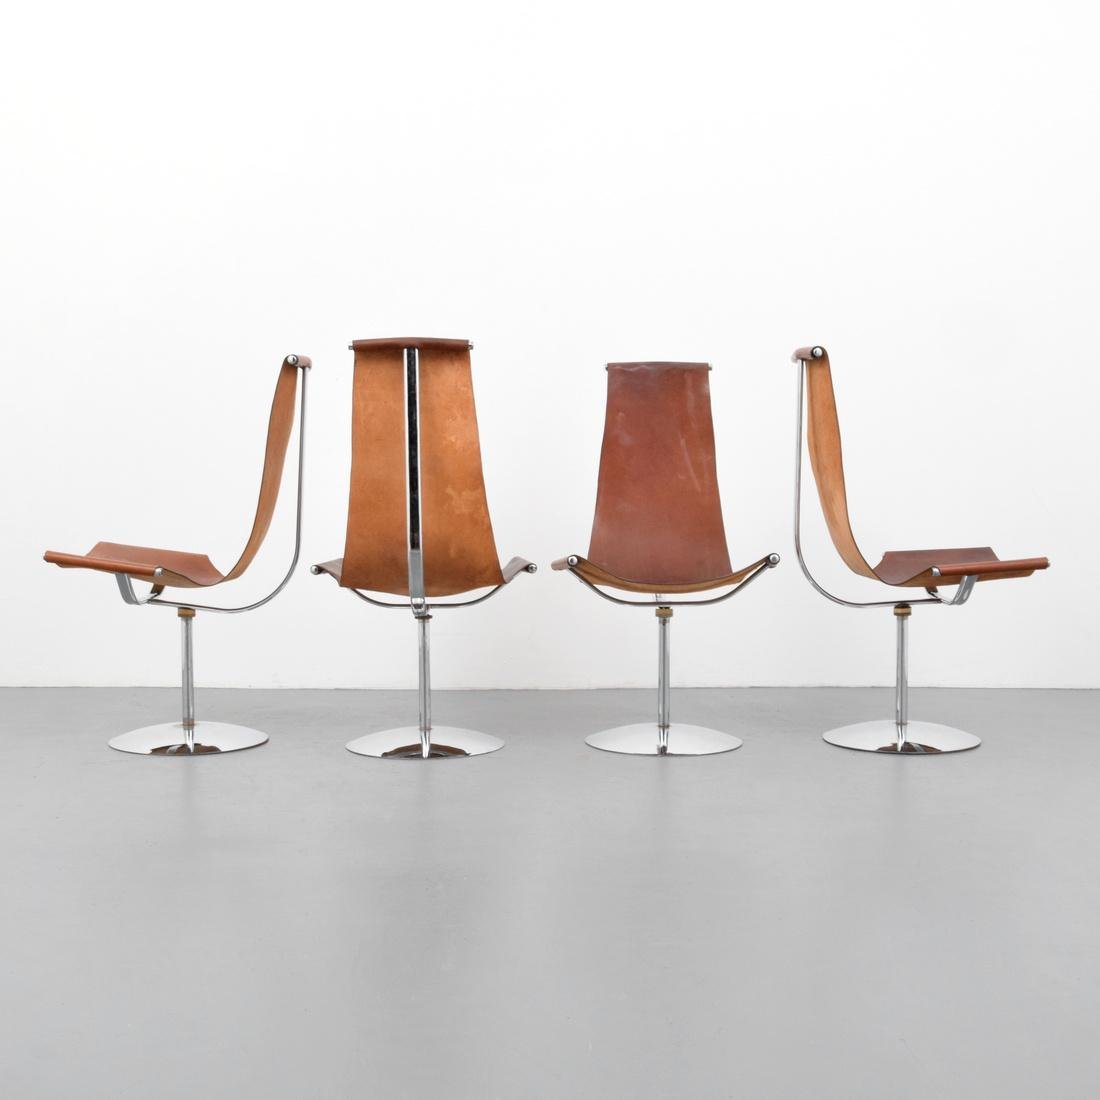 4 Leather Sling Chairs, Manner of Laverne - 2